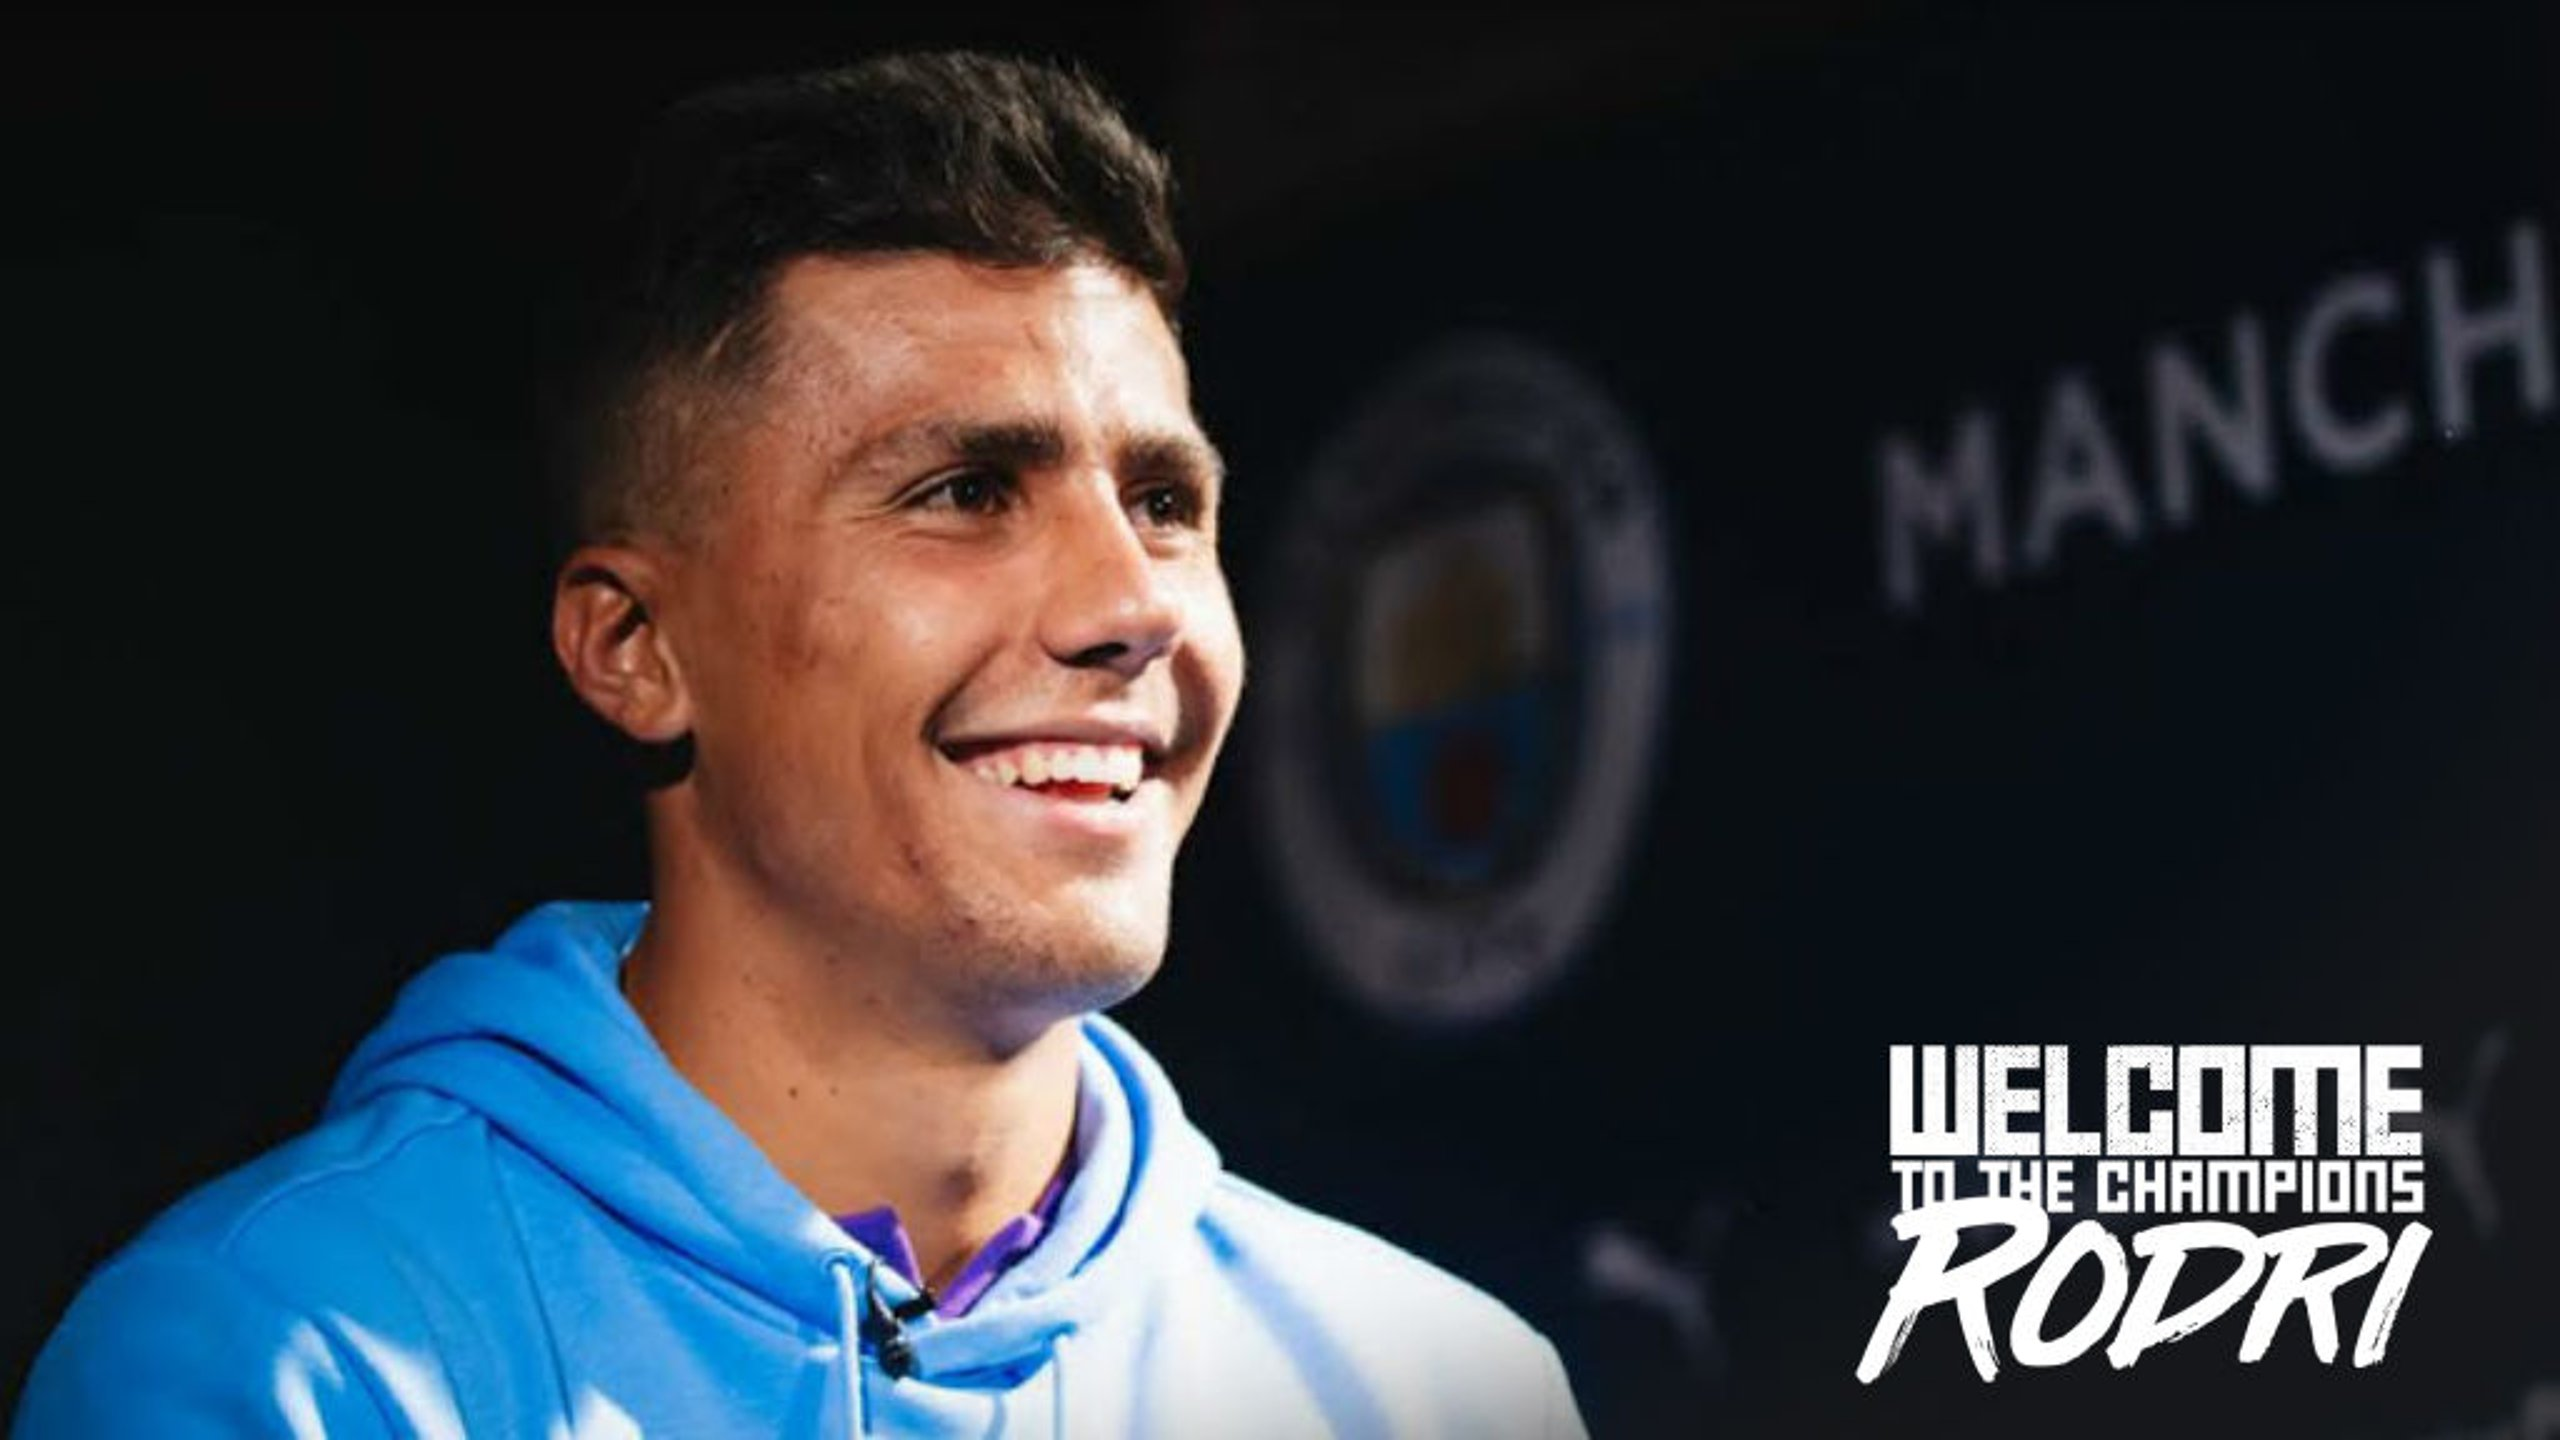 Welcome Rodri: First day gallery